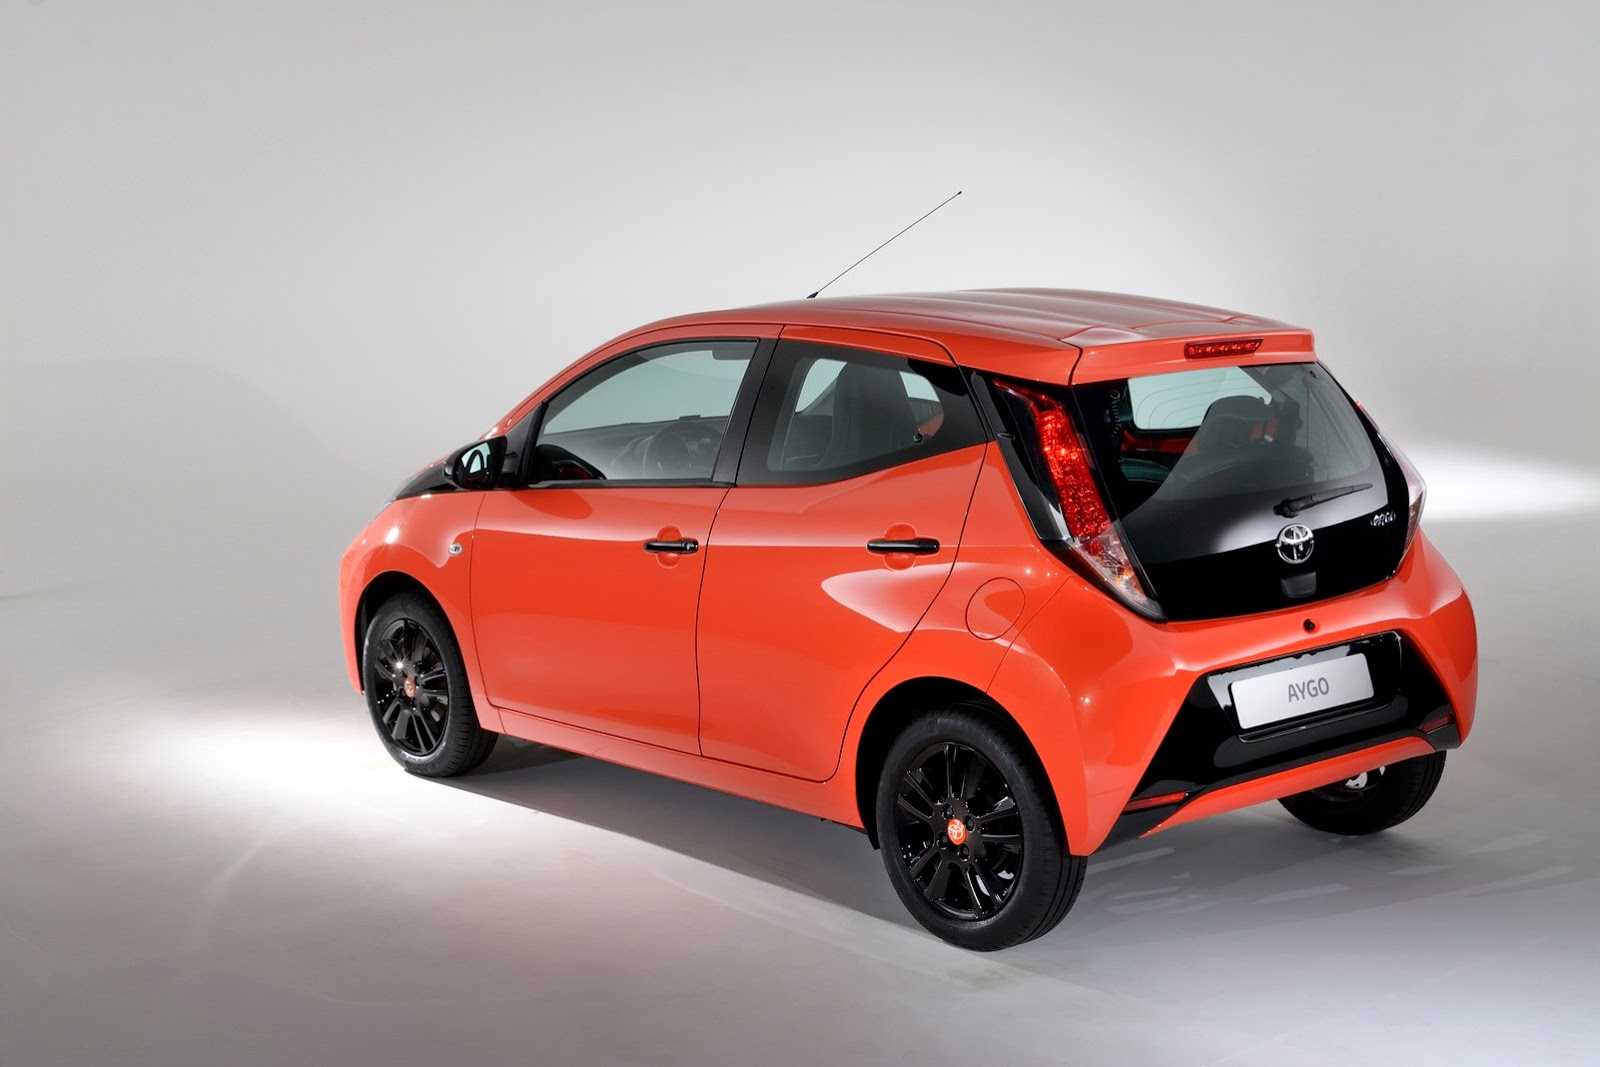 2014 toyota aygo uk pricing autonews 1. Black Bedroom Furniture Sets. Home Design Ideas